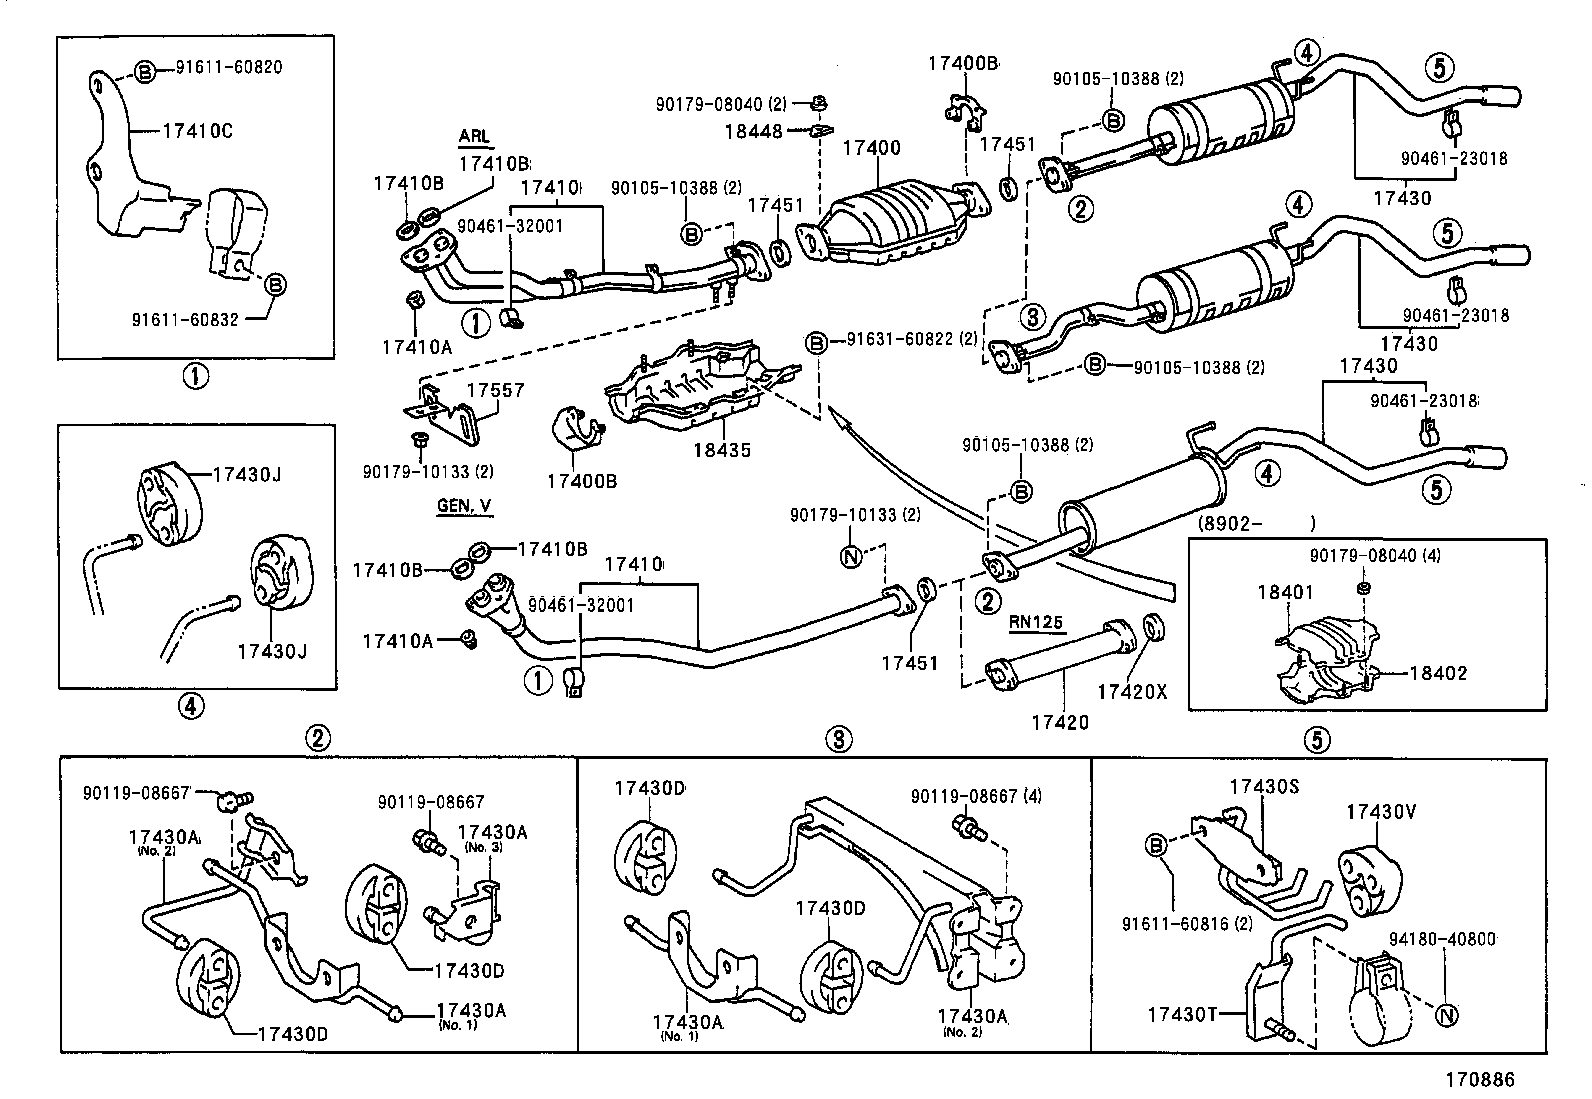 E  18 moreover 1702 exhaust Pipe as well 22re Ecu Pinout 94 Toyota Pickup Yotatech Forums New 1994 Wiring Diagram additionally Abs Warning Light Circuit moreover P 0900c152800766f0. on 1991 toyota pickup wiring diagram